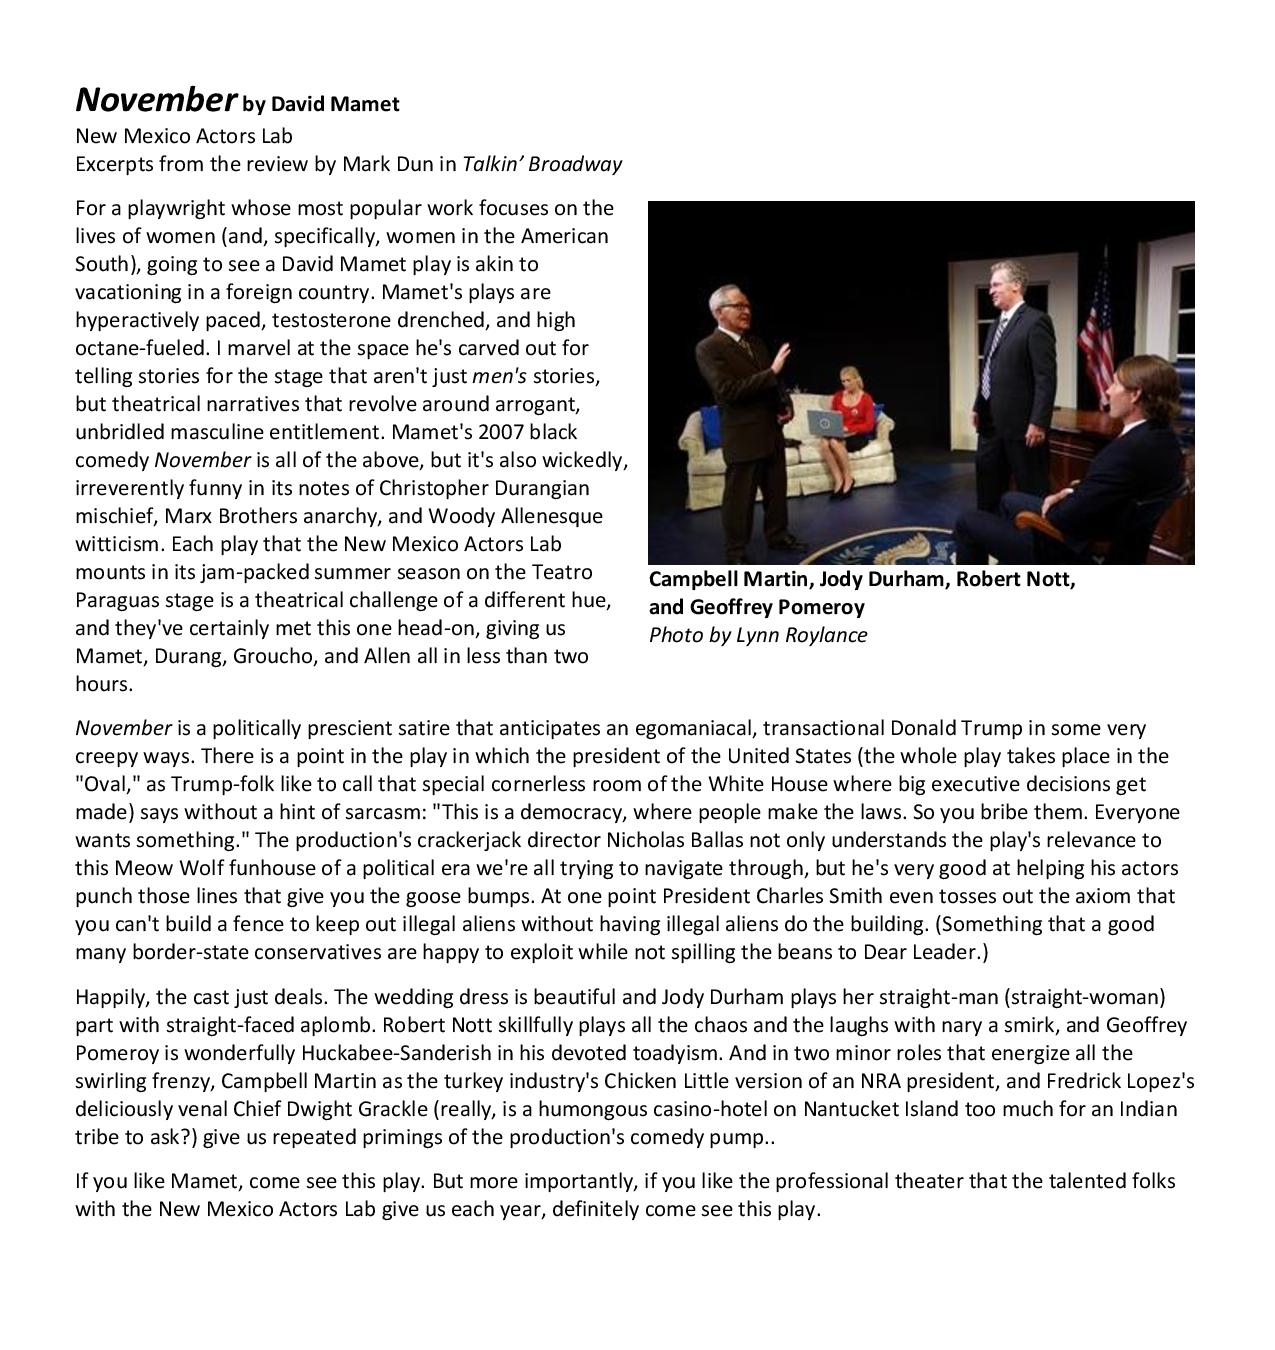 November Review Excerpts-page-001.jpg